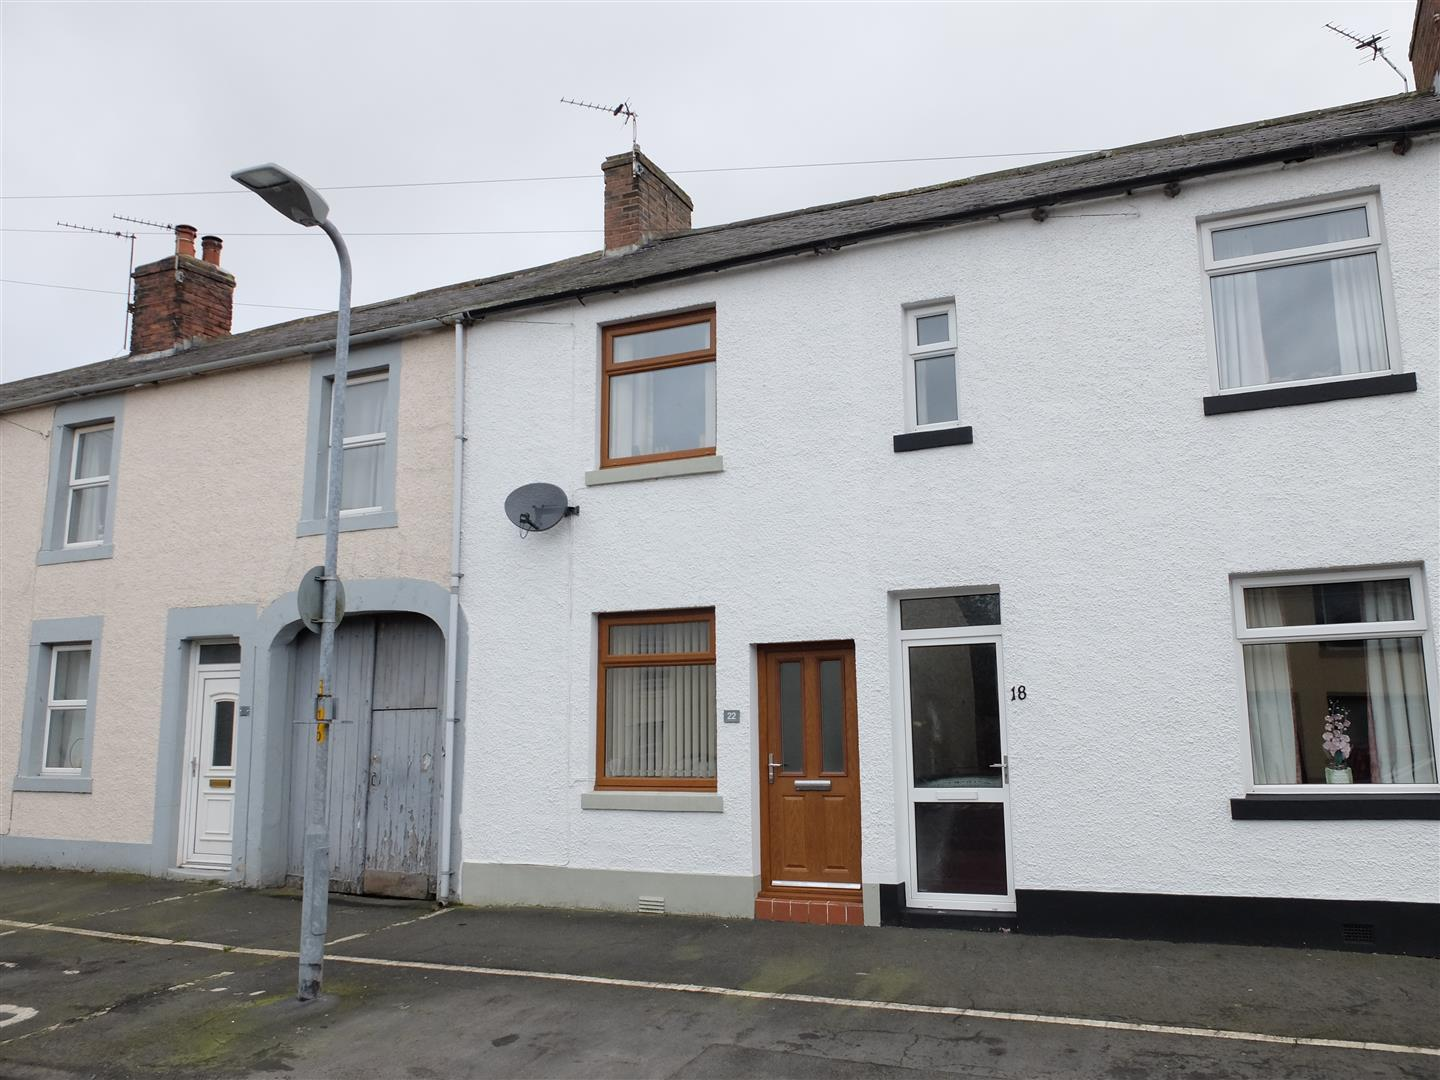 22 Esk Street Carlisle 2 Bedrooms House - Terraced For Sale